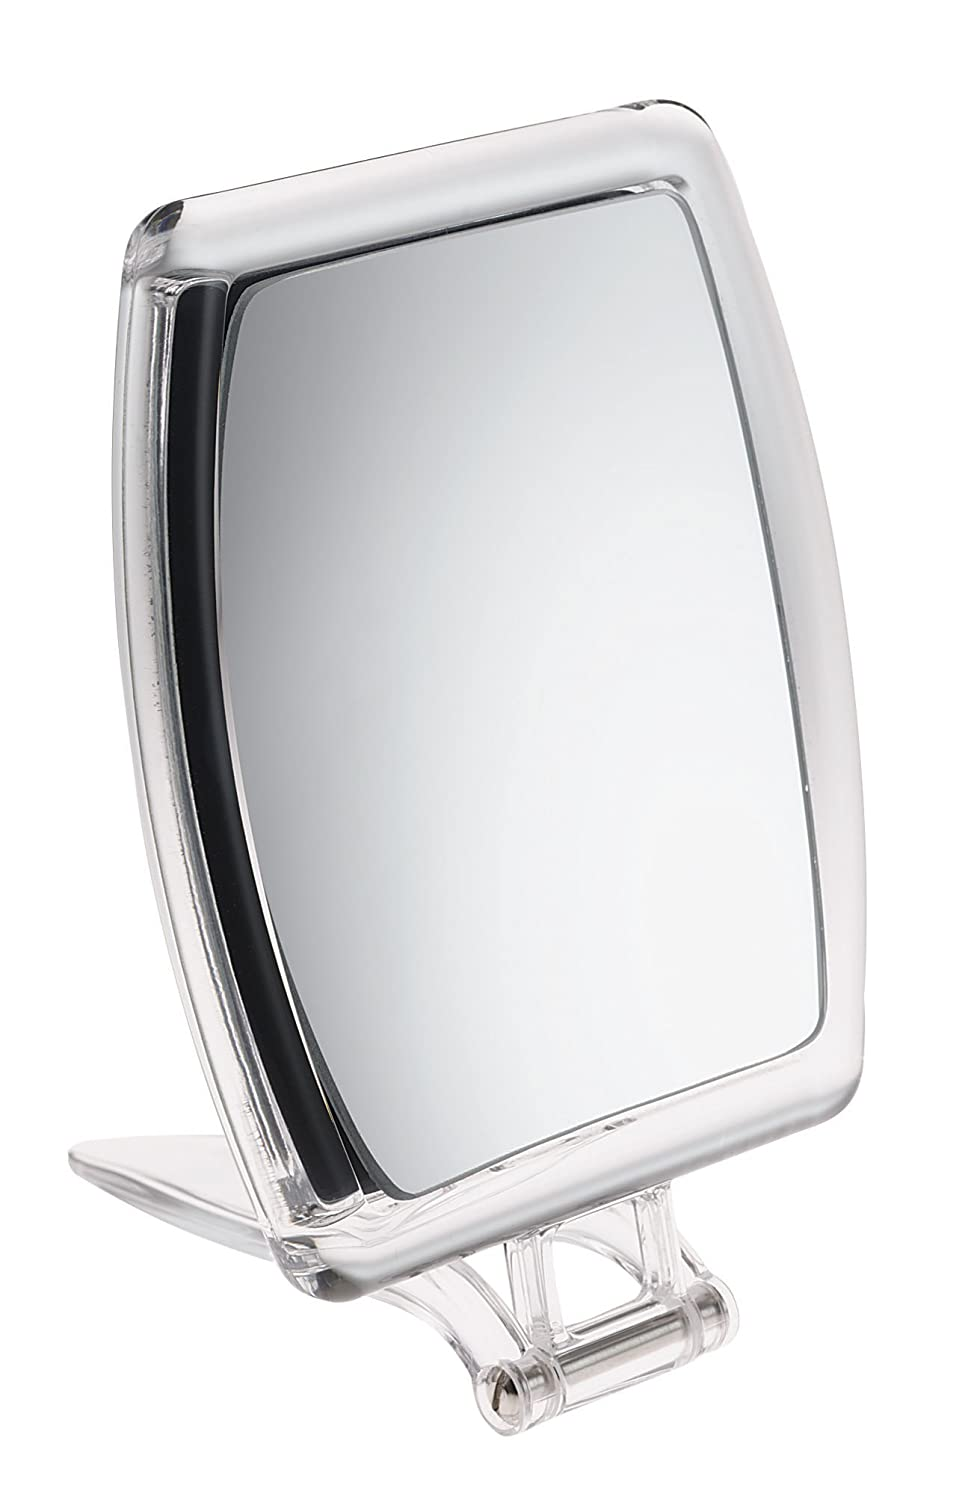 FMG Mirrors - Miroir de voyage rectangle grossissant x10 - 15 cm Fancy Metal Goods Ltd A061/15